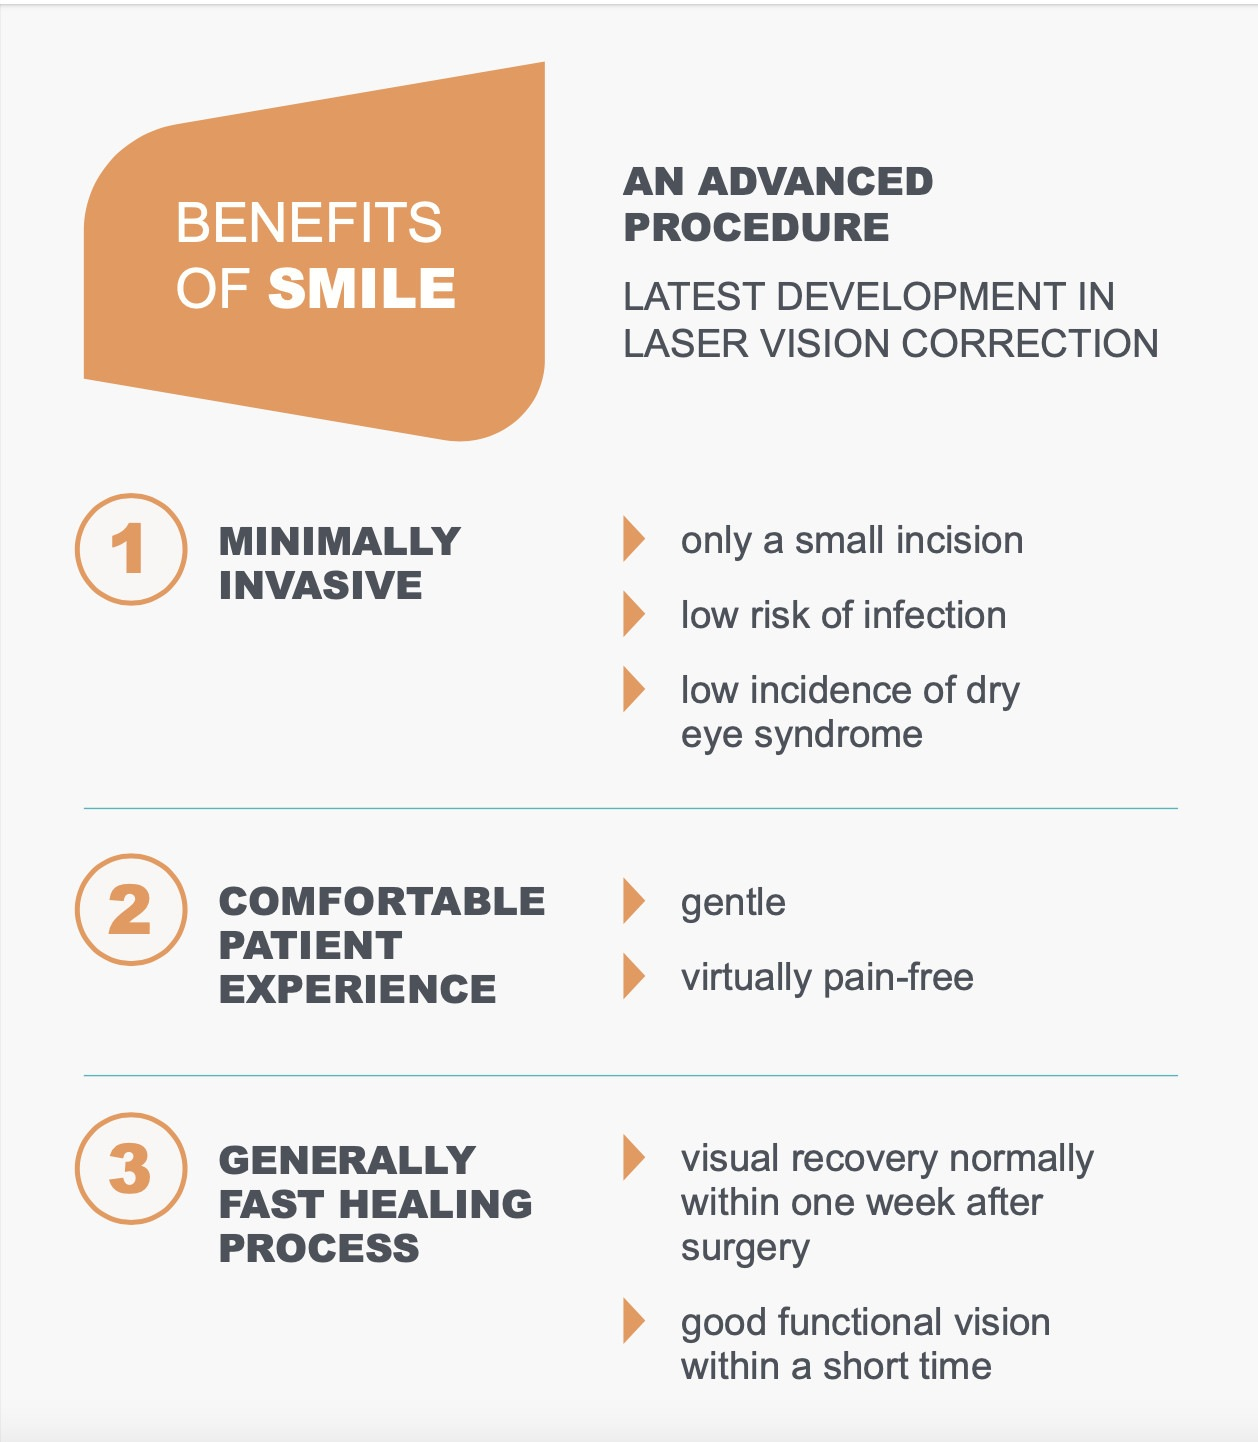 BENEFITS OF SMILE